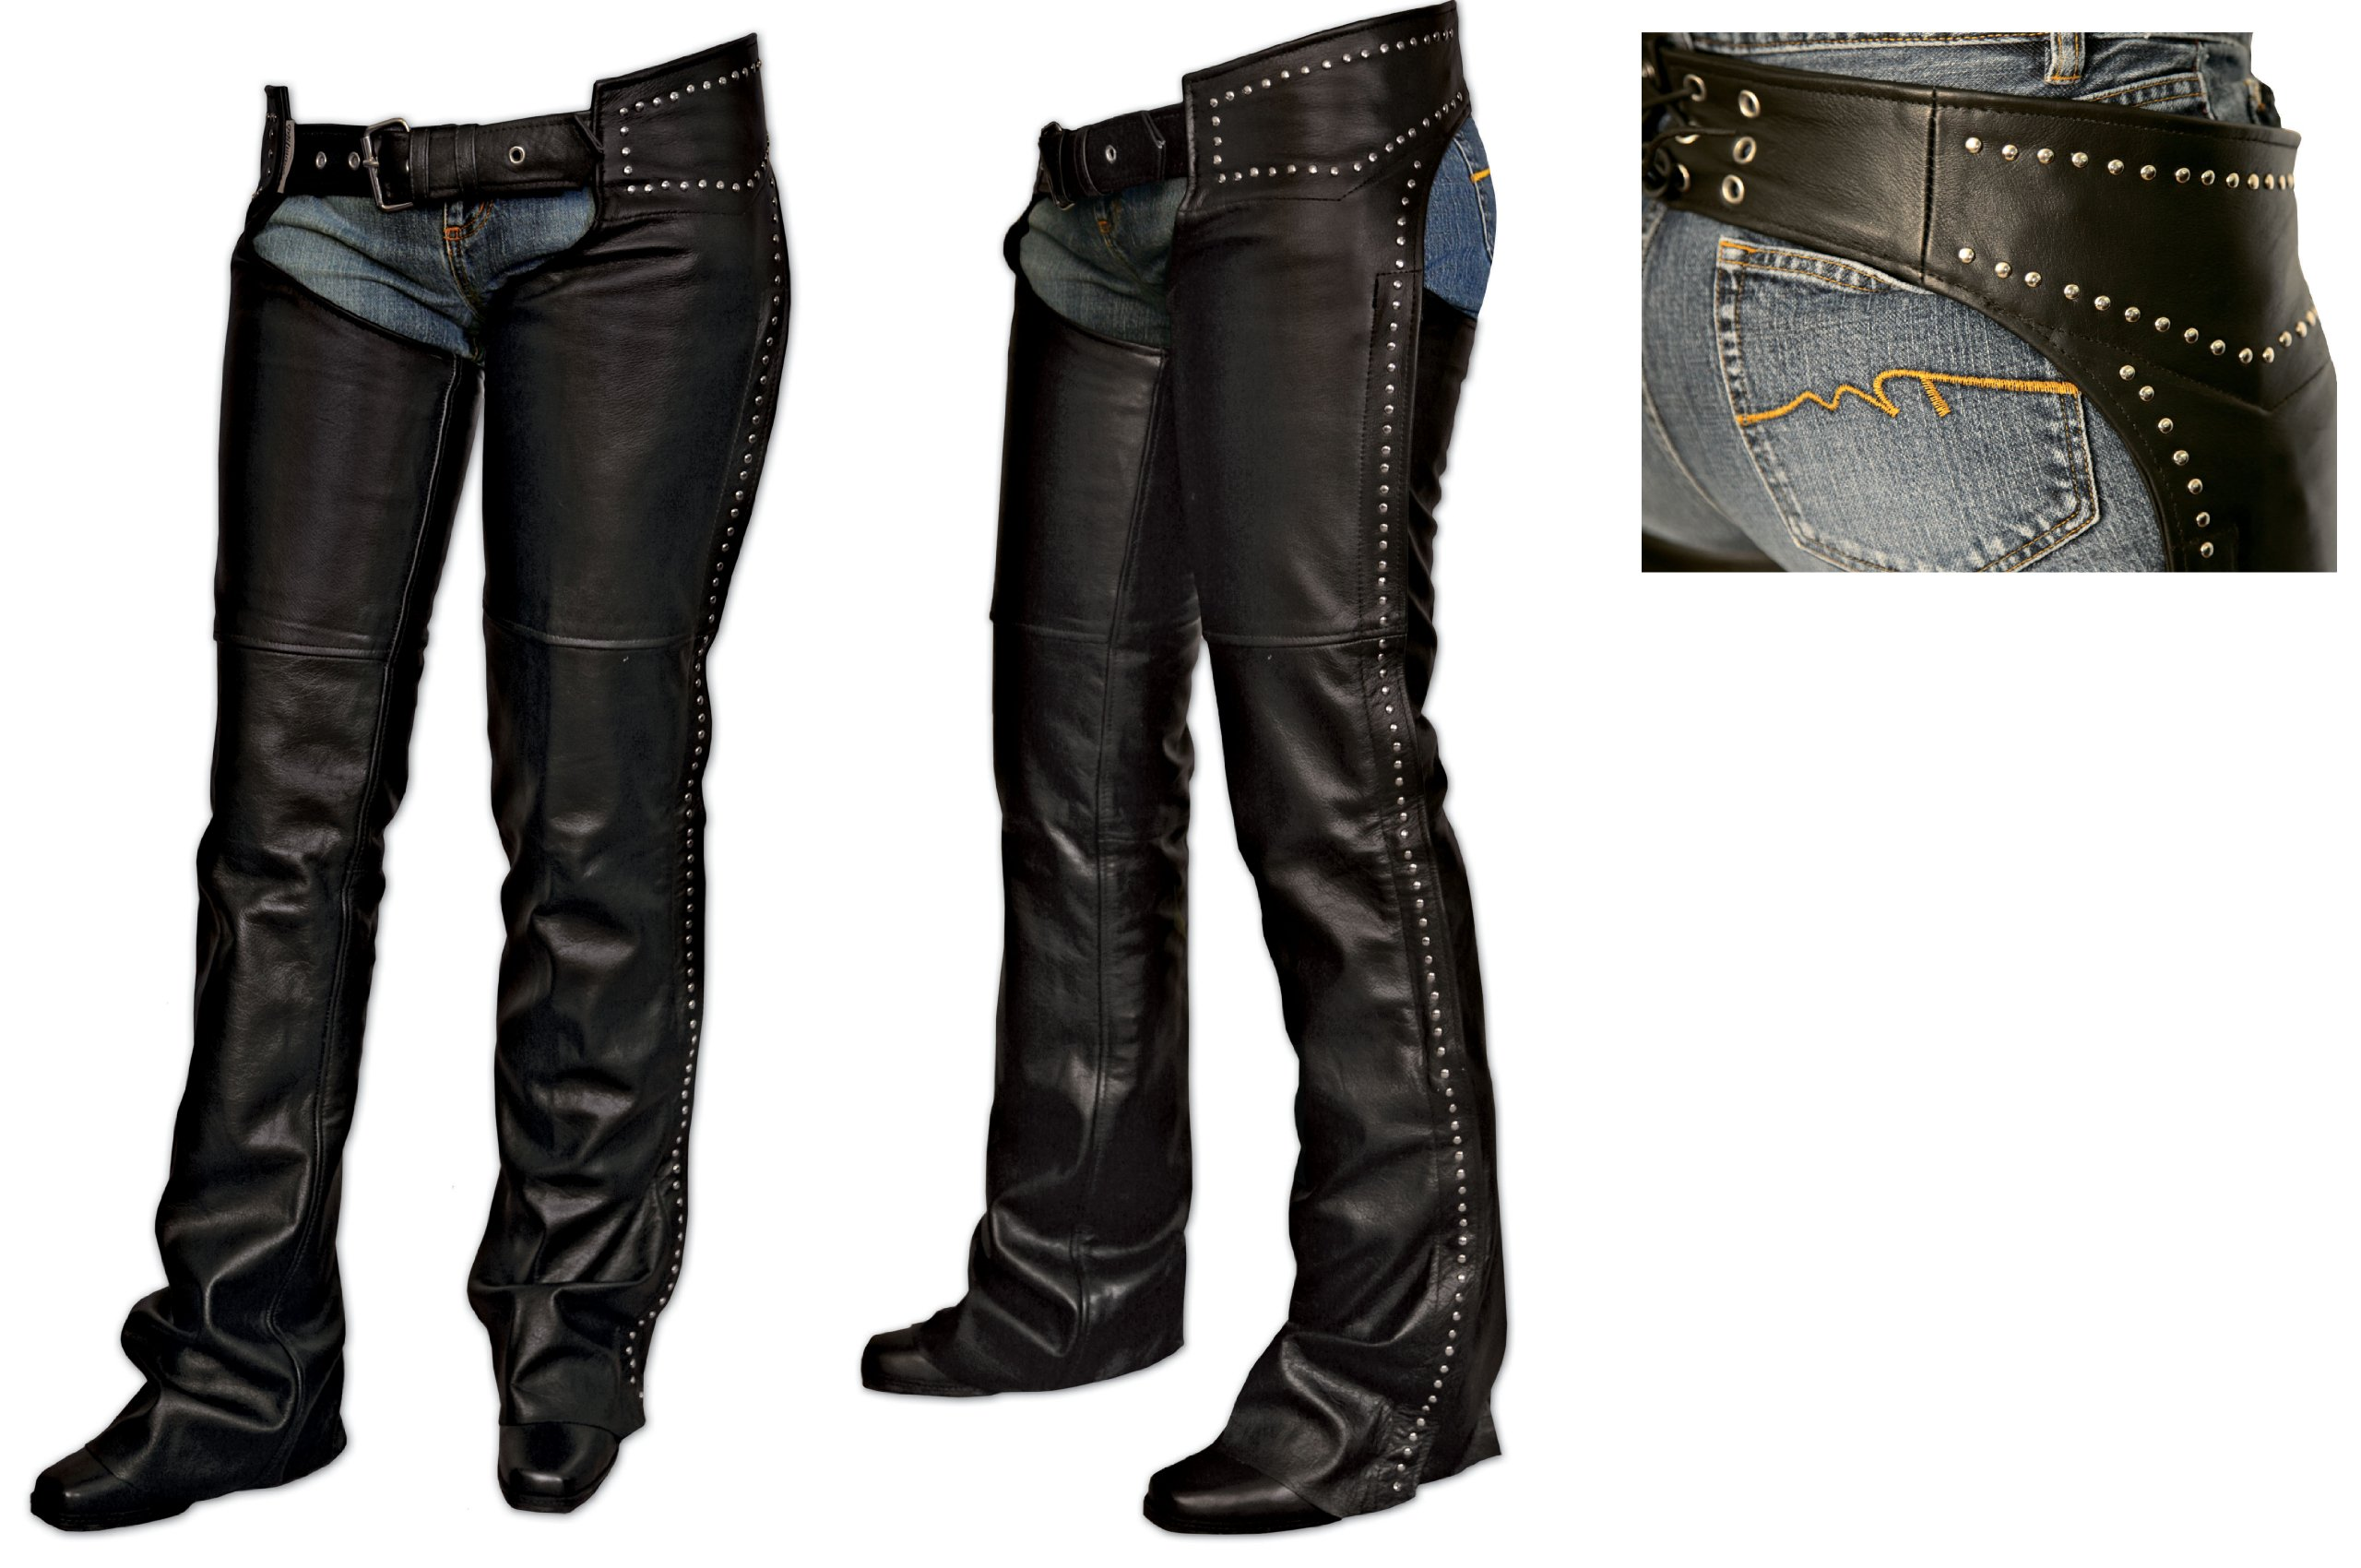 Milwaukee Motorcycle Clothing Company Ladies Chaps with Studs (Black, Small)